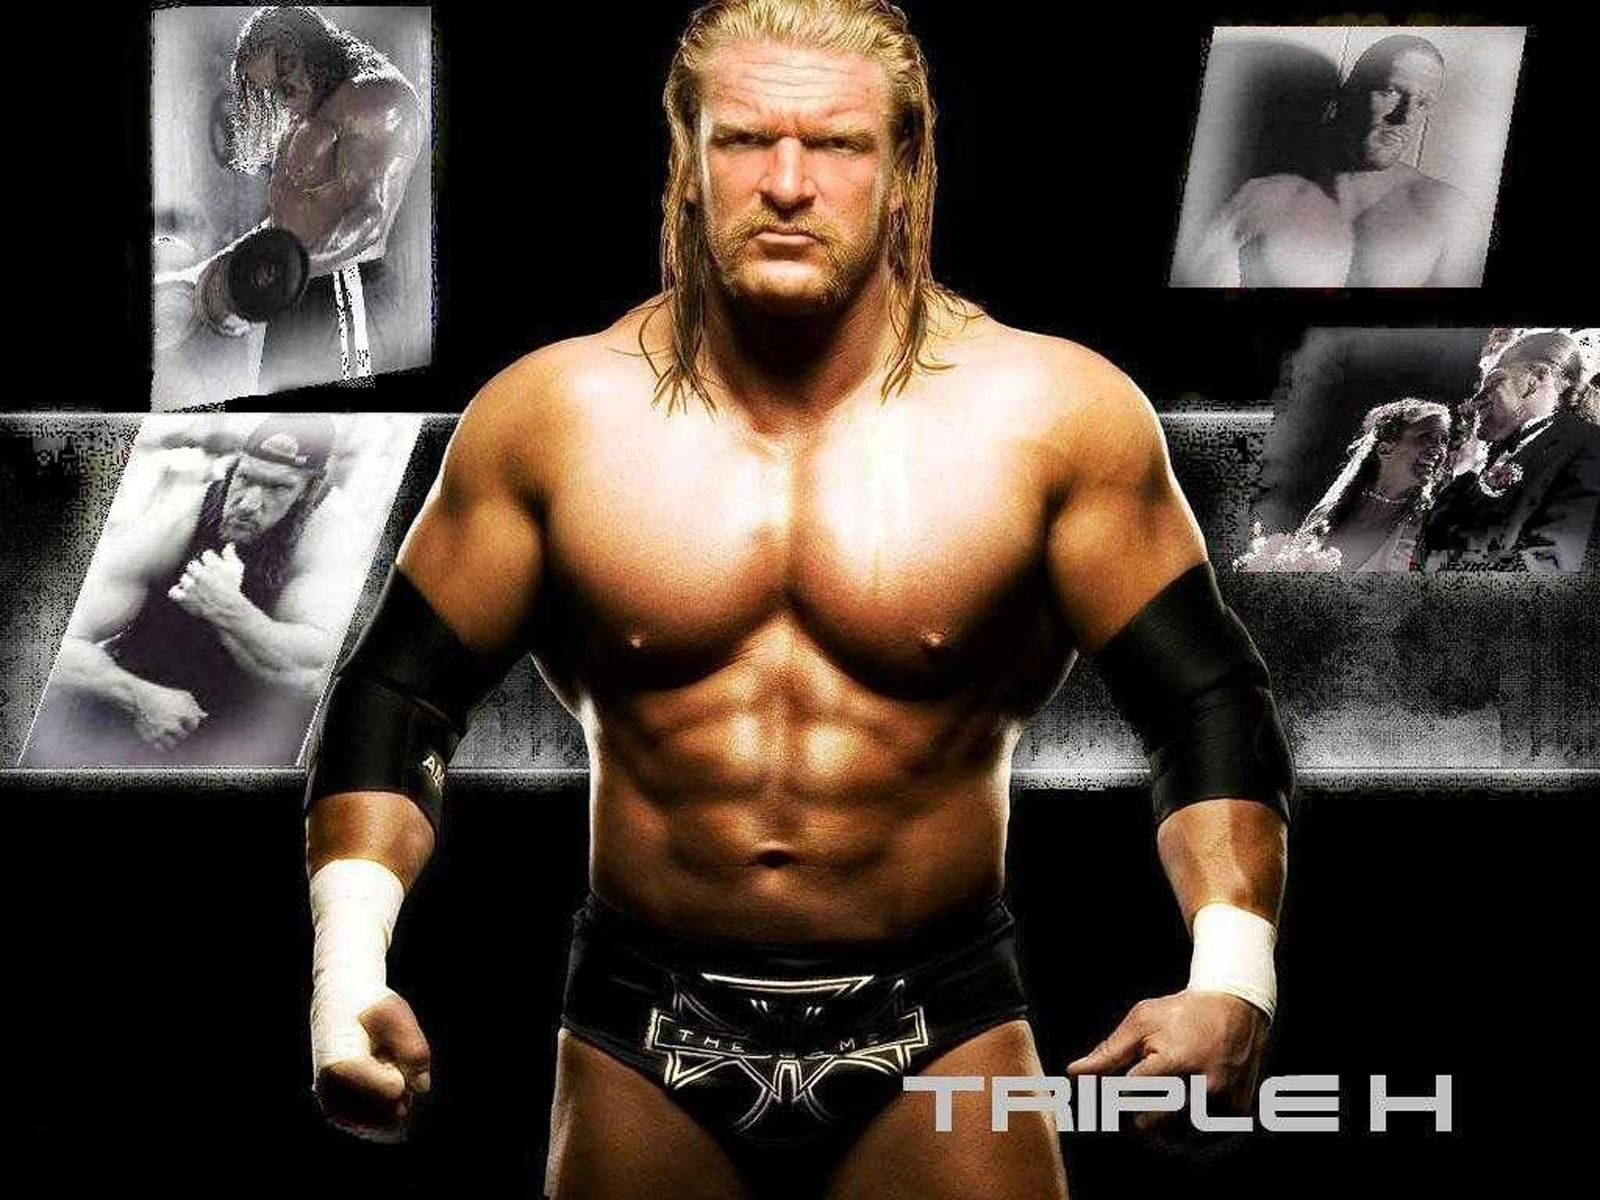 Wwe Triple H Hd Wallpapers Images Picture Photo Wwe Pictures Wwe Wallpapers Wrestler